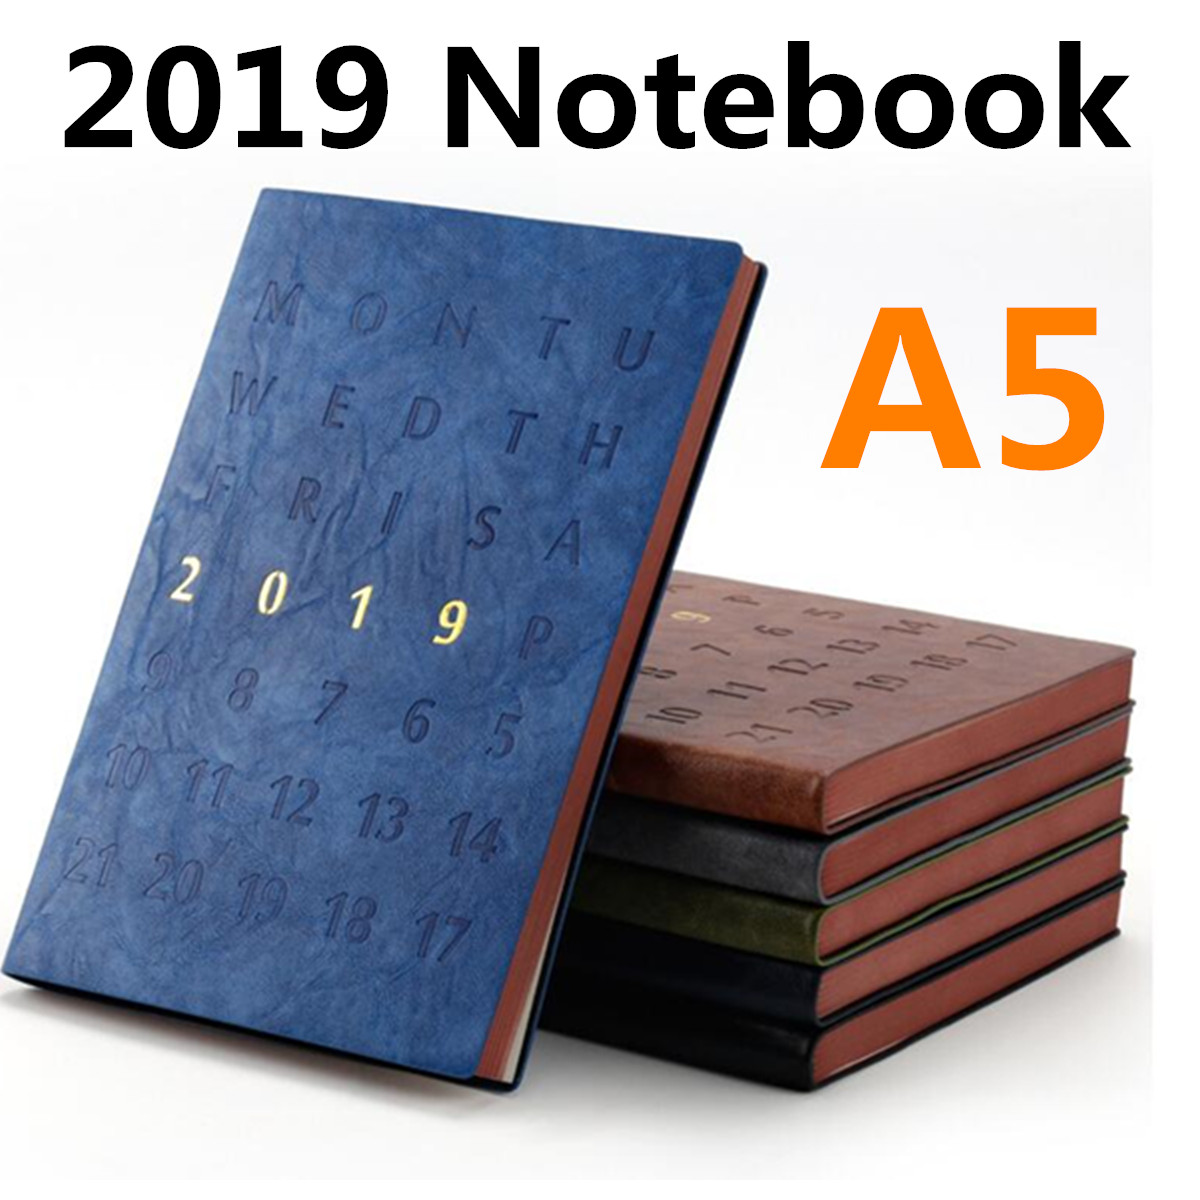 2019 A5 Note book Planner Organizer for Daily Monthly Planner A5 Leather Notebook Thicken School Planner Notepad Brown Paper2019 A5 Note book Planner Organizer for Daily Monthly Planner A5 Leather Notebook Thicken School Planner Notepad Brown Paper